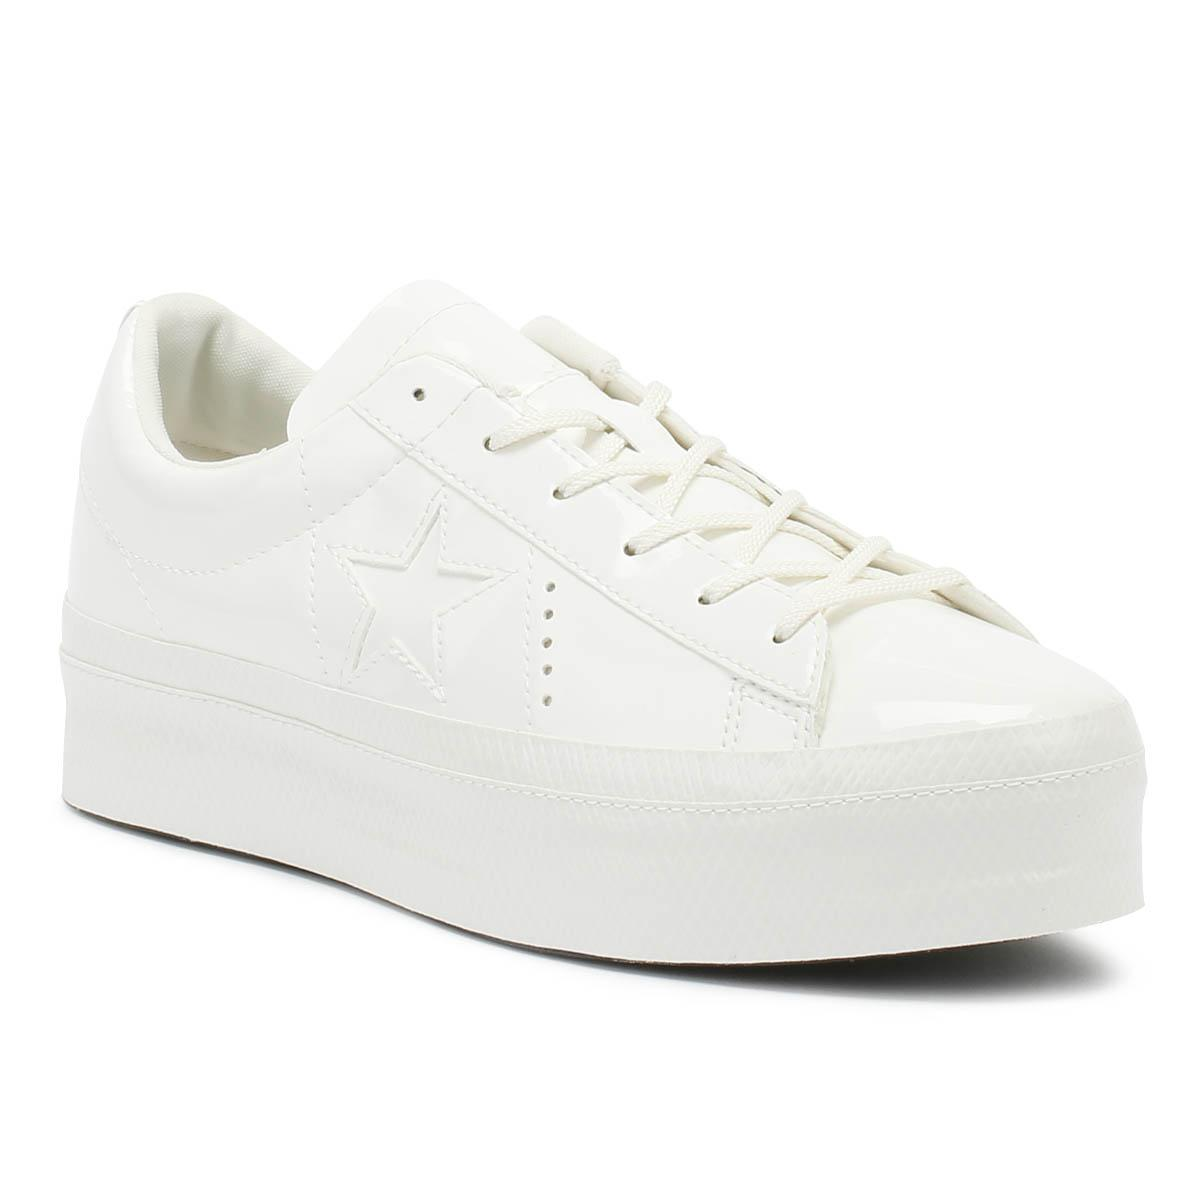 dbb1852db493 Converse One Star Womens Vintage White Platform Ox Trainers in White ...